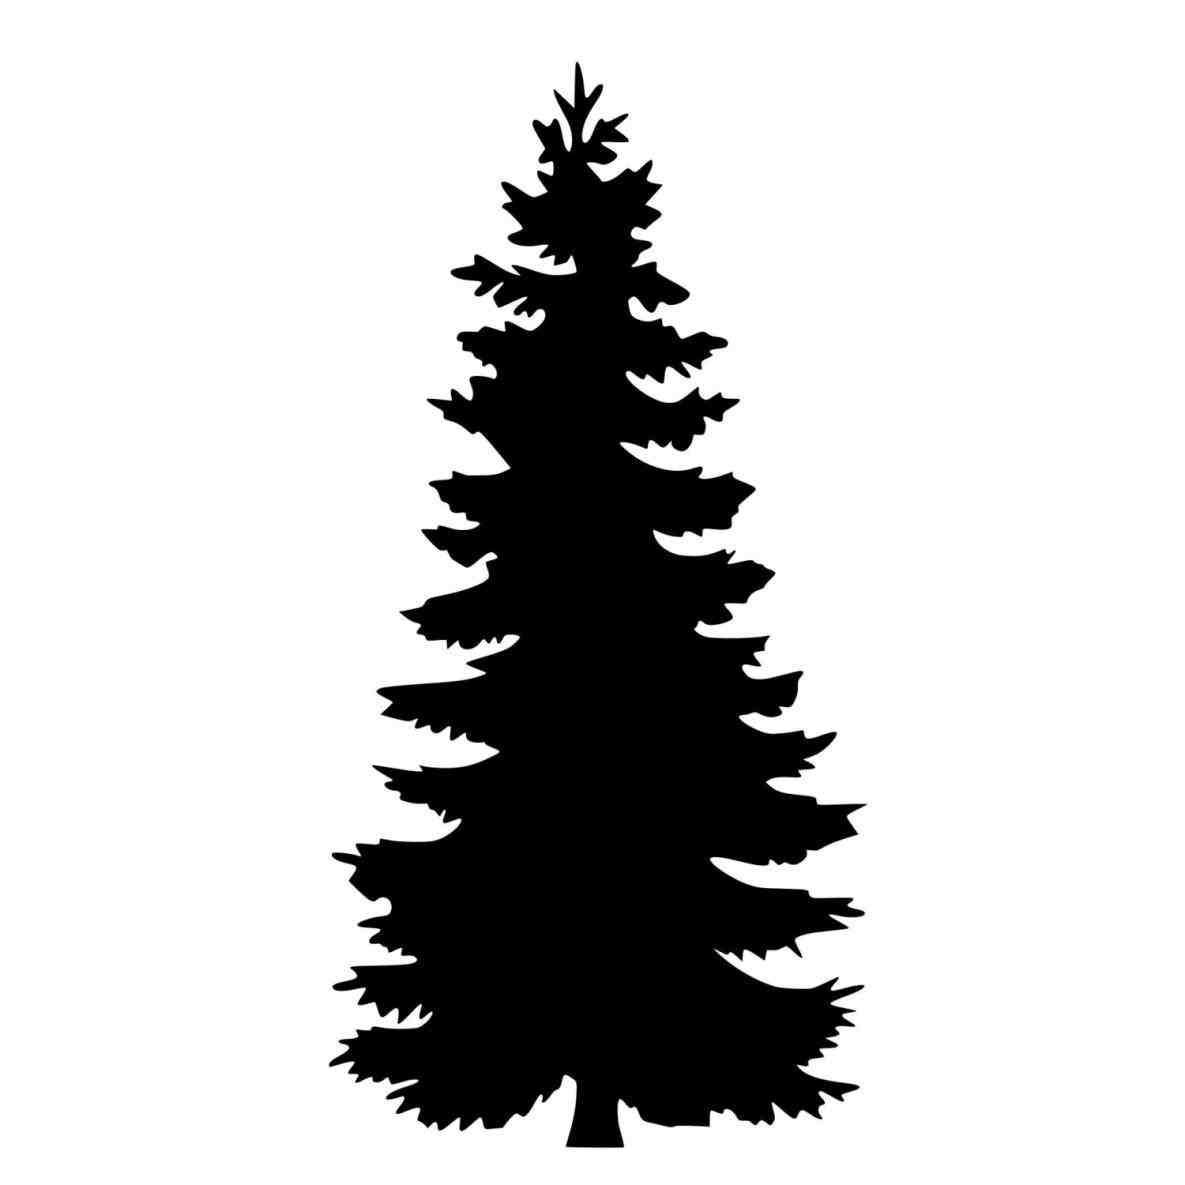 hight resolution of 1185x1185 silhouette clipart pine tree